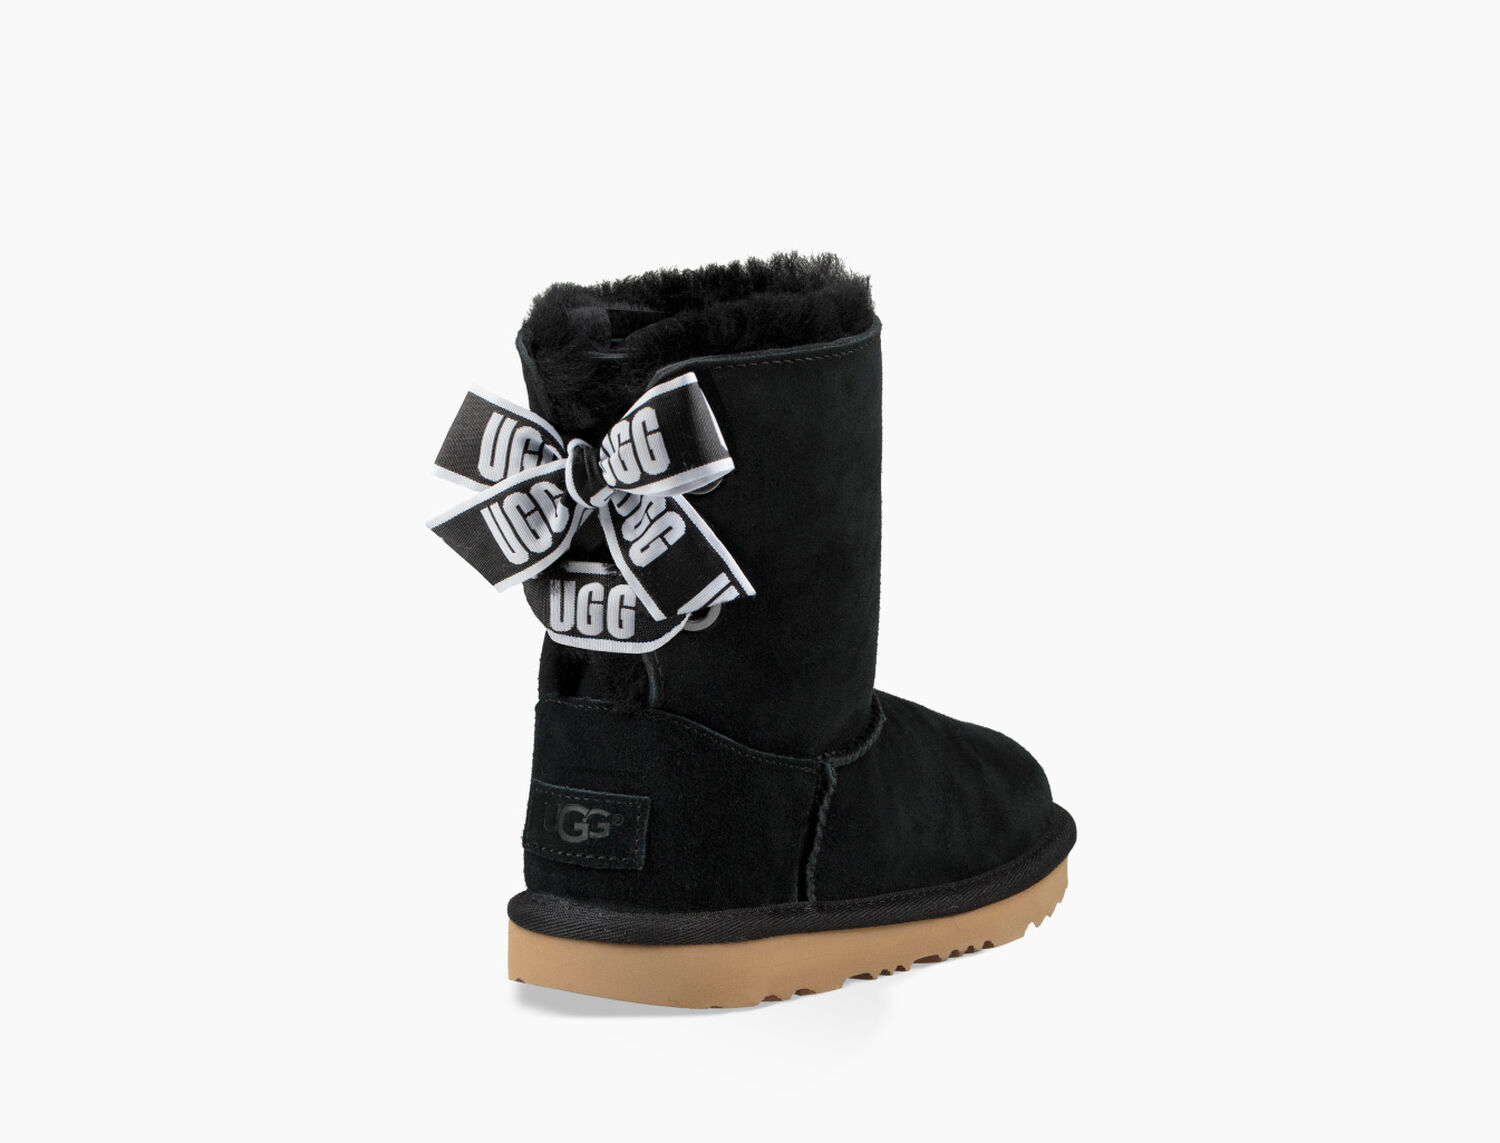 75d21f63ea6 Kids' Share this product Customizable Bailey Bow II Boot